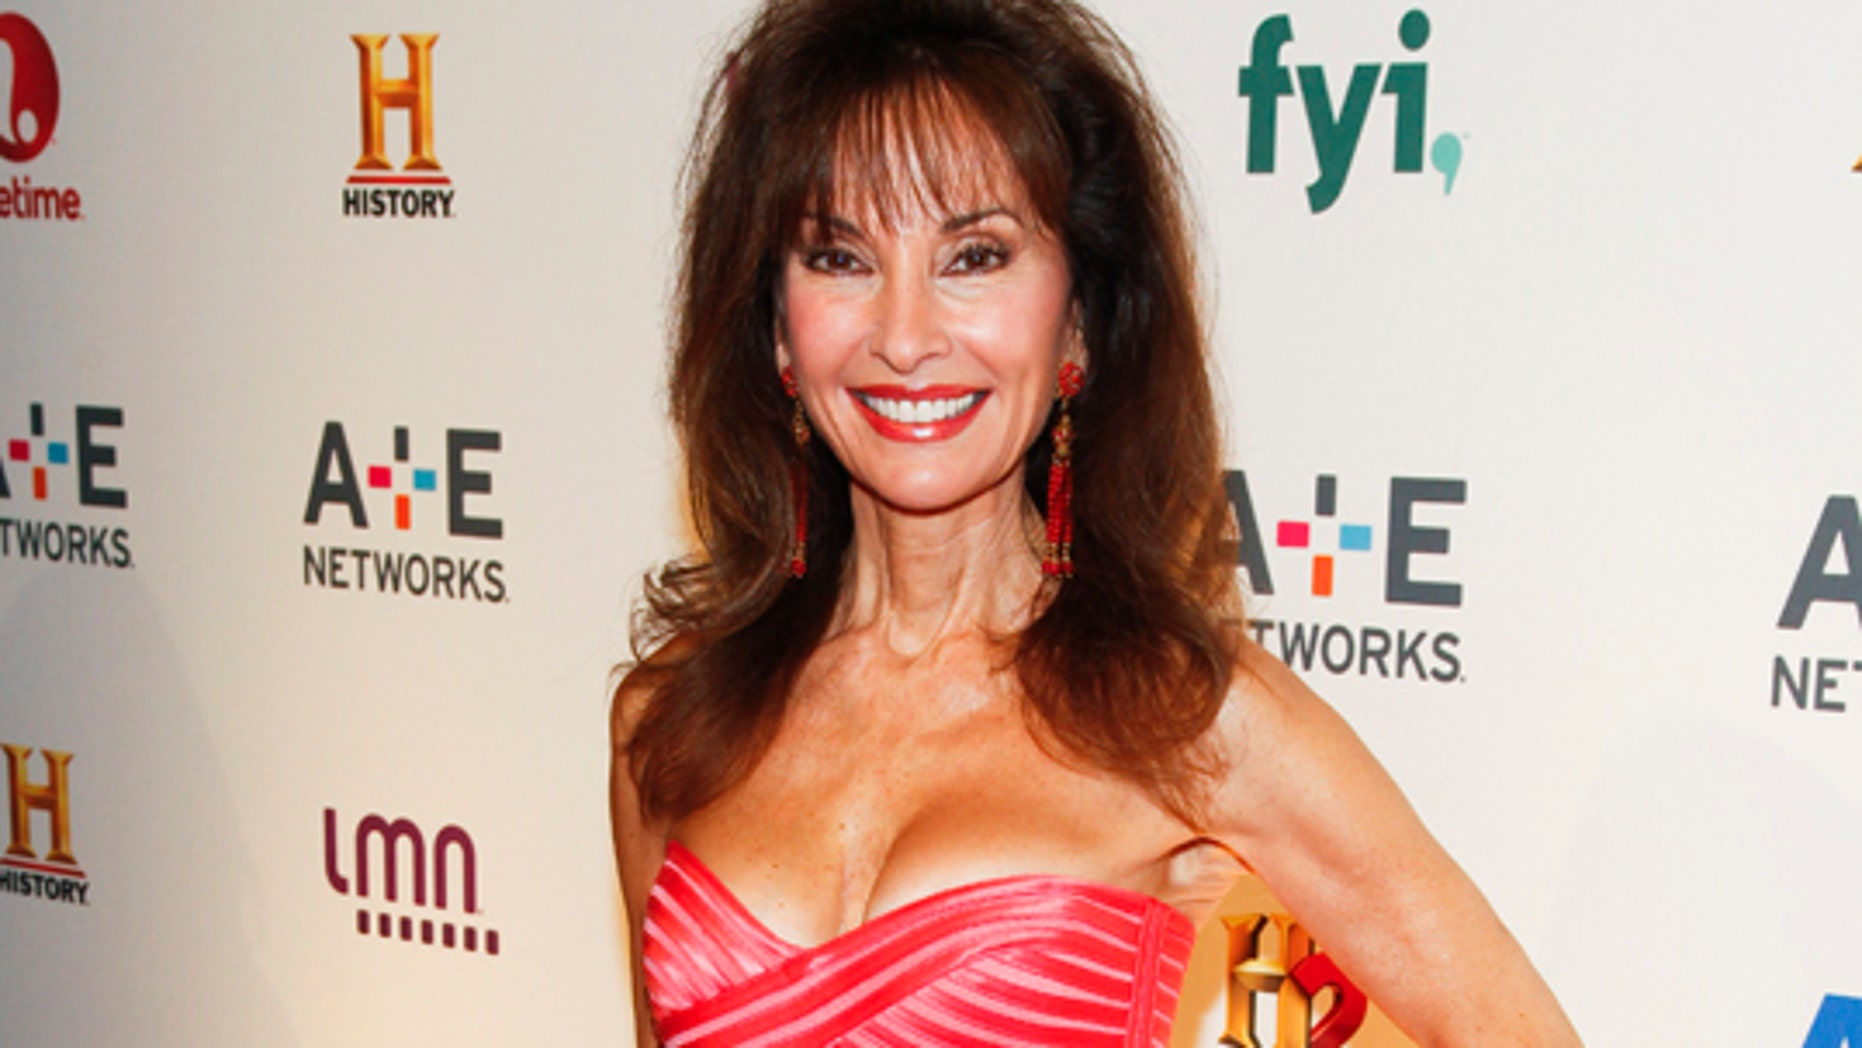 Susan Lucci attends the A+E Networks 2015 Upfront at the Park Avenue Armory on Thursday, April 30, 2015, in New York. (Photo by Andy Kropa/Invision/AP)